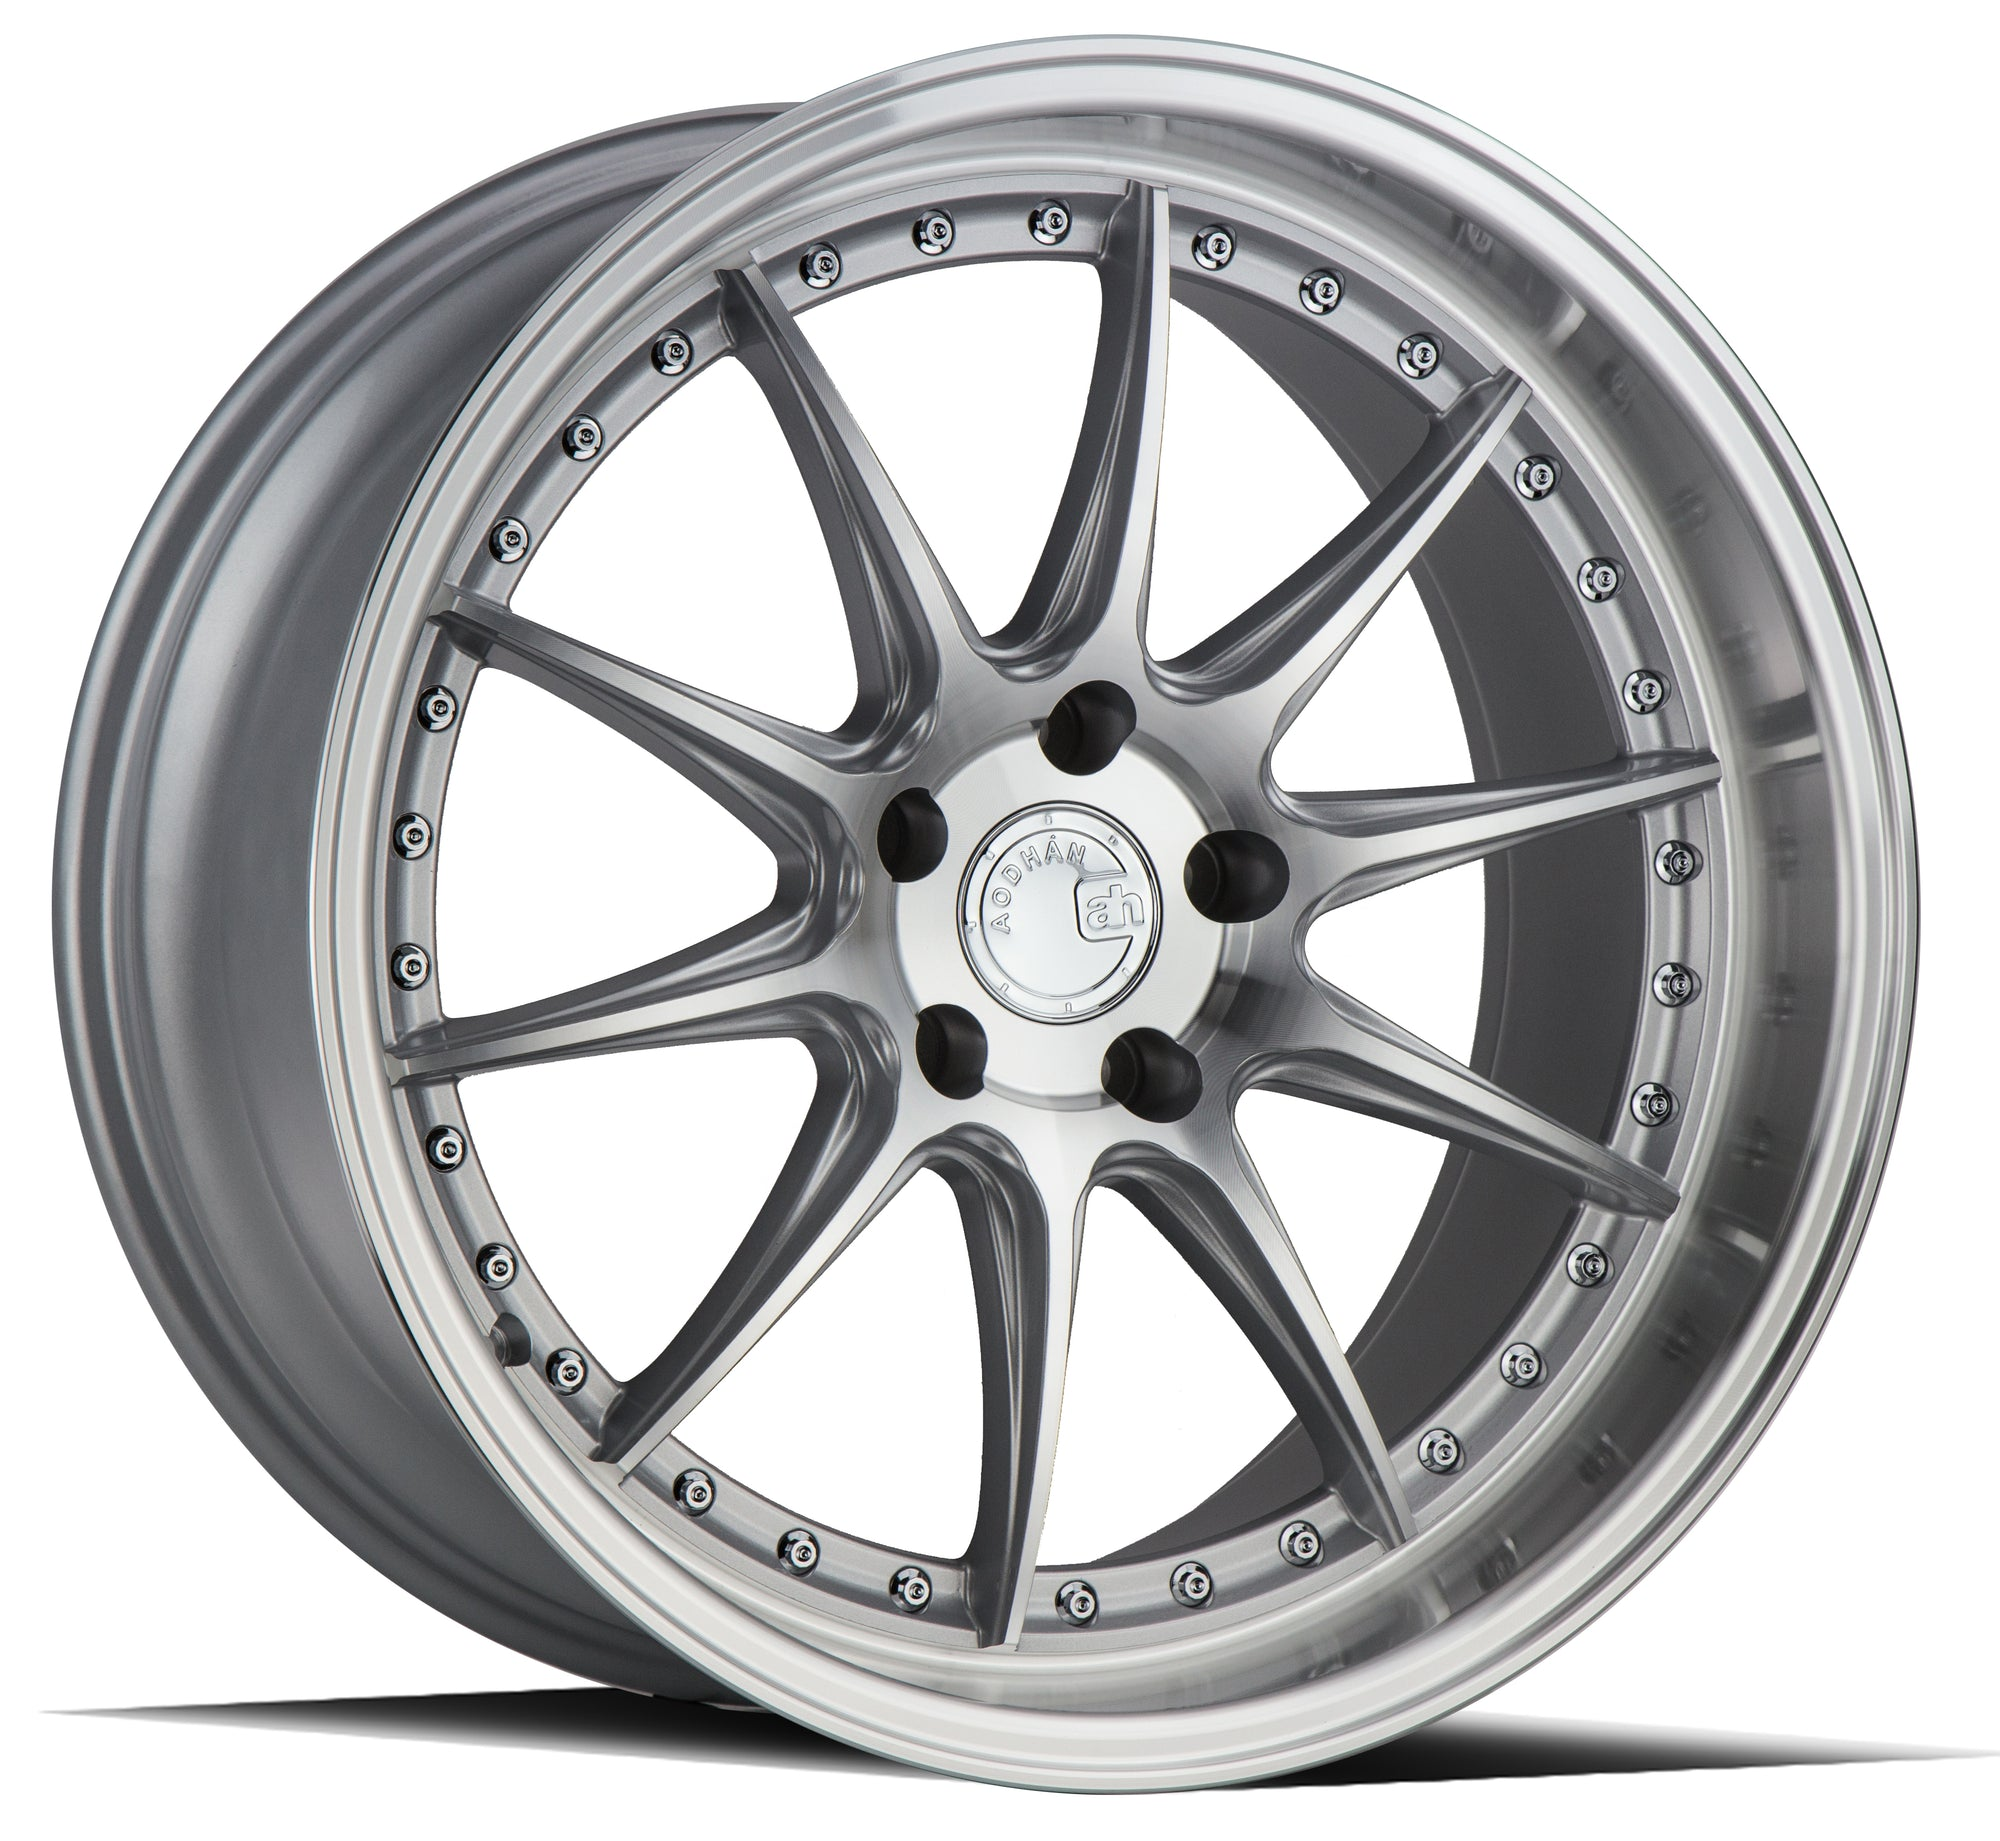 Aodhan DS07 19x9.5 5x114.3 +22 Silver w/Machined Face